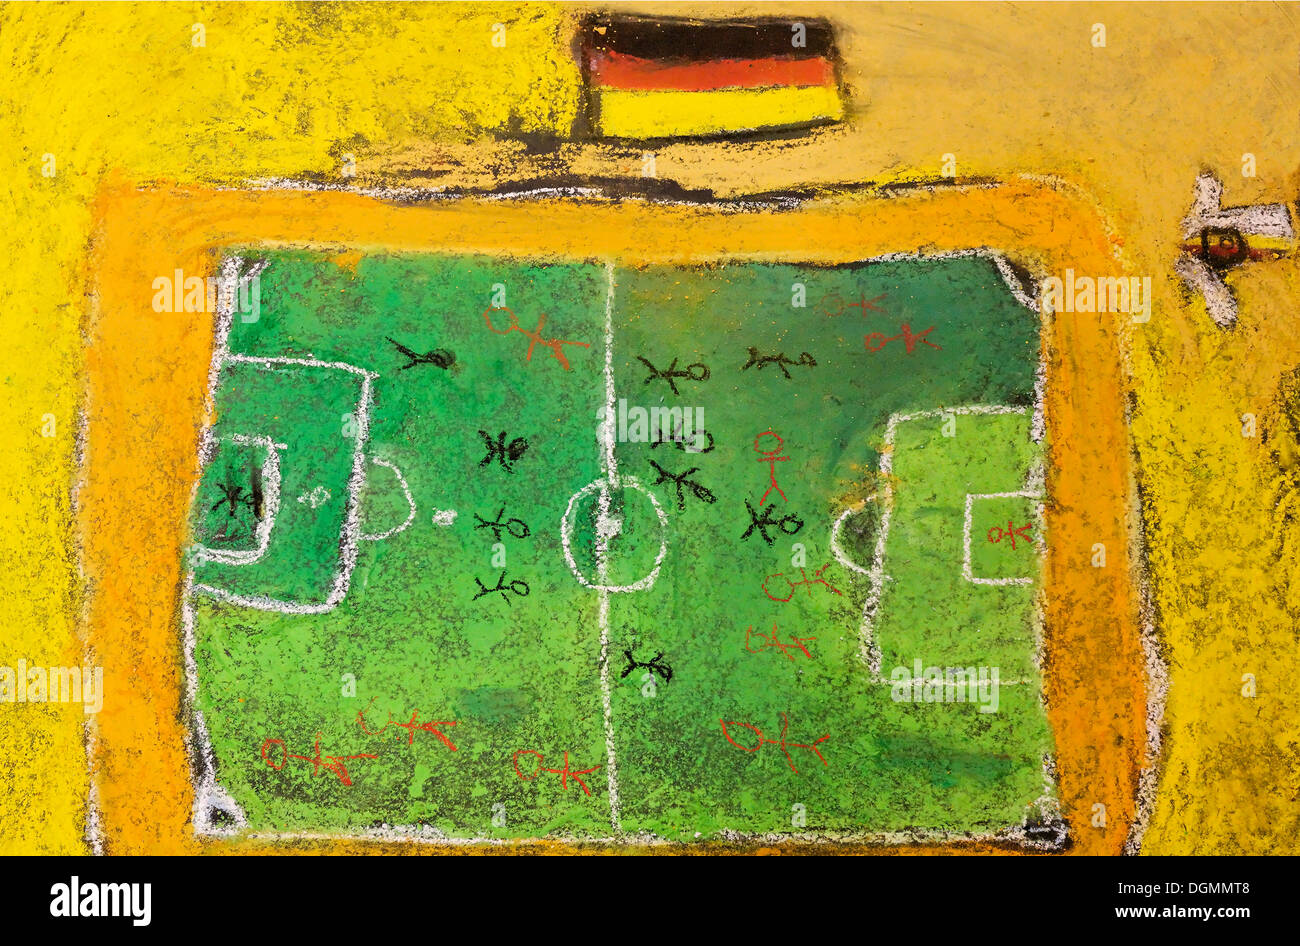 Soccer field and a German national flag, chalk drawing, painted on the floor by children - Stock Image